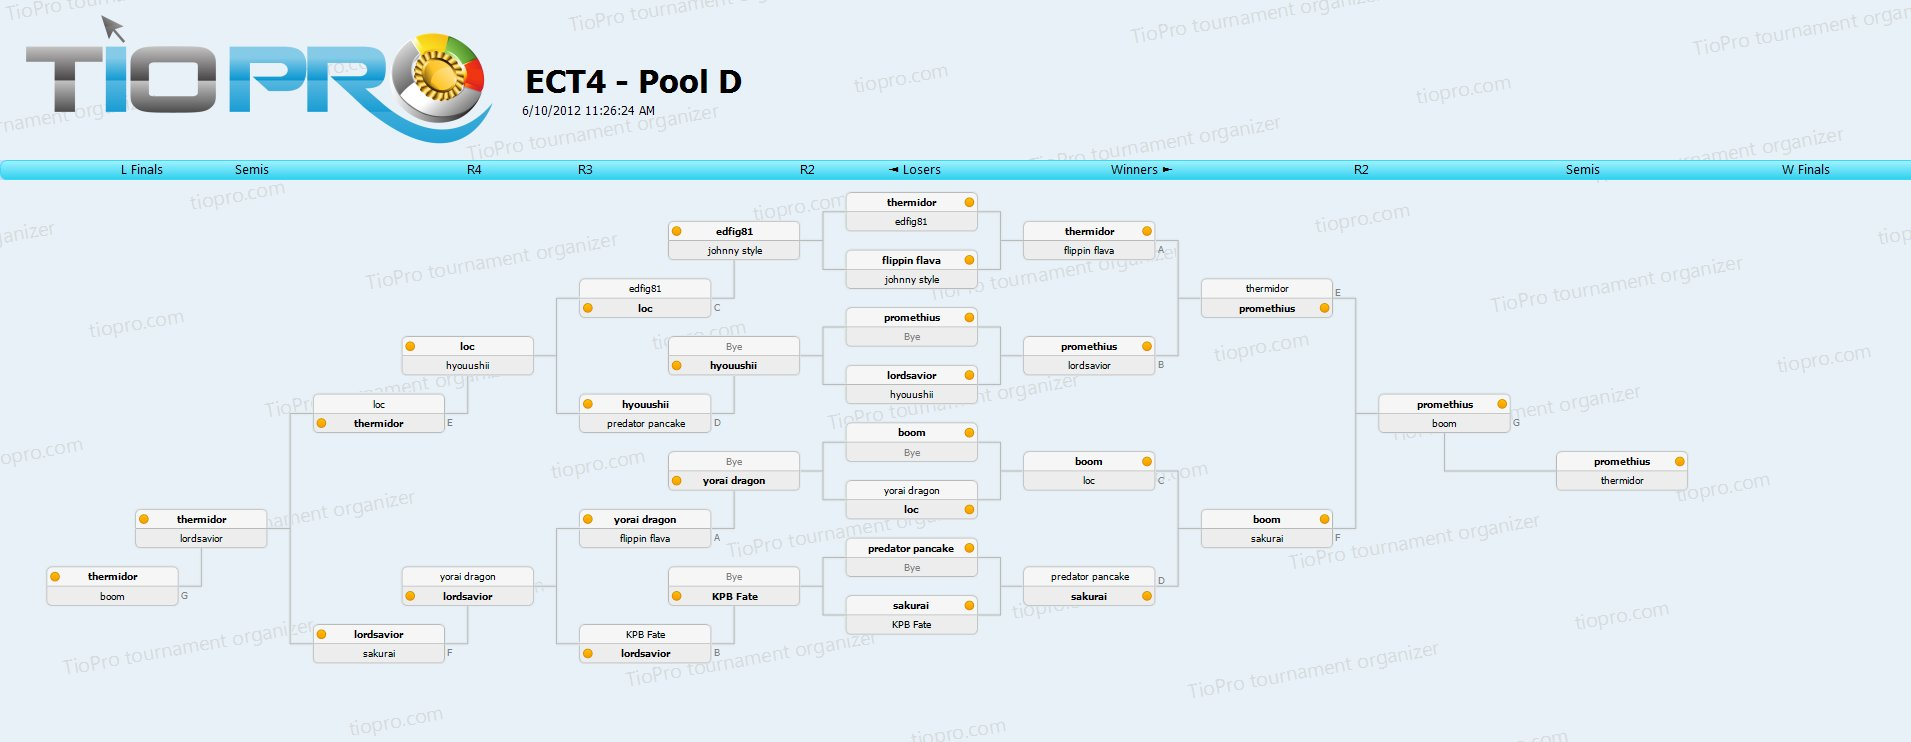 East Coast Throwdown 4 - Pool D